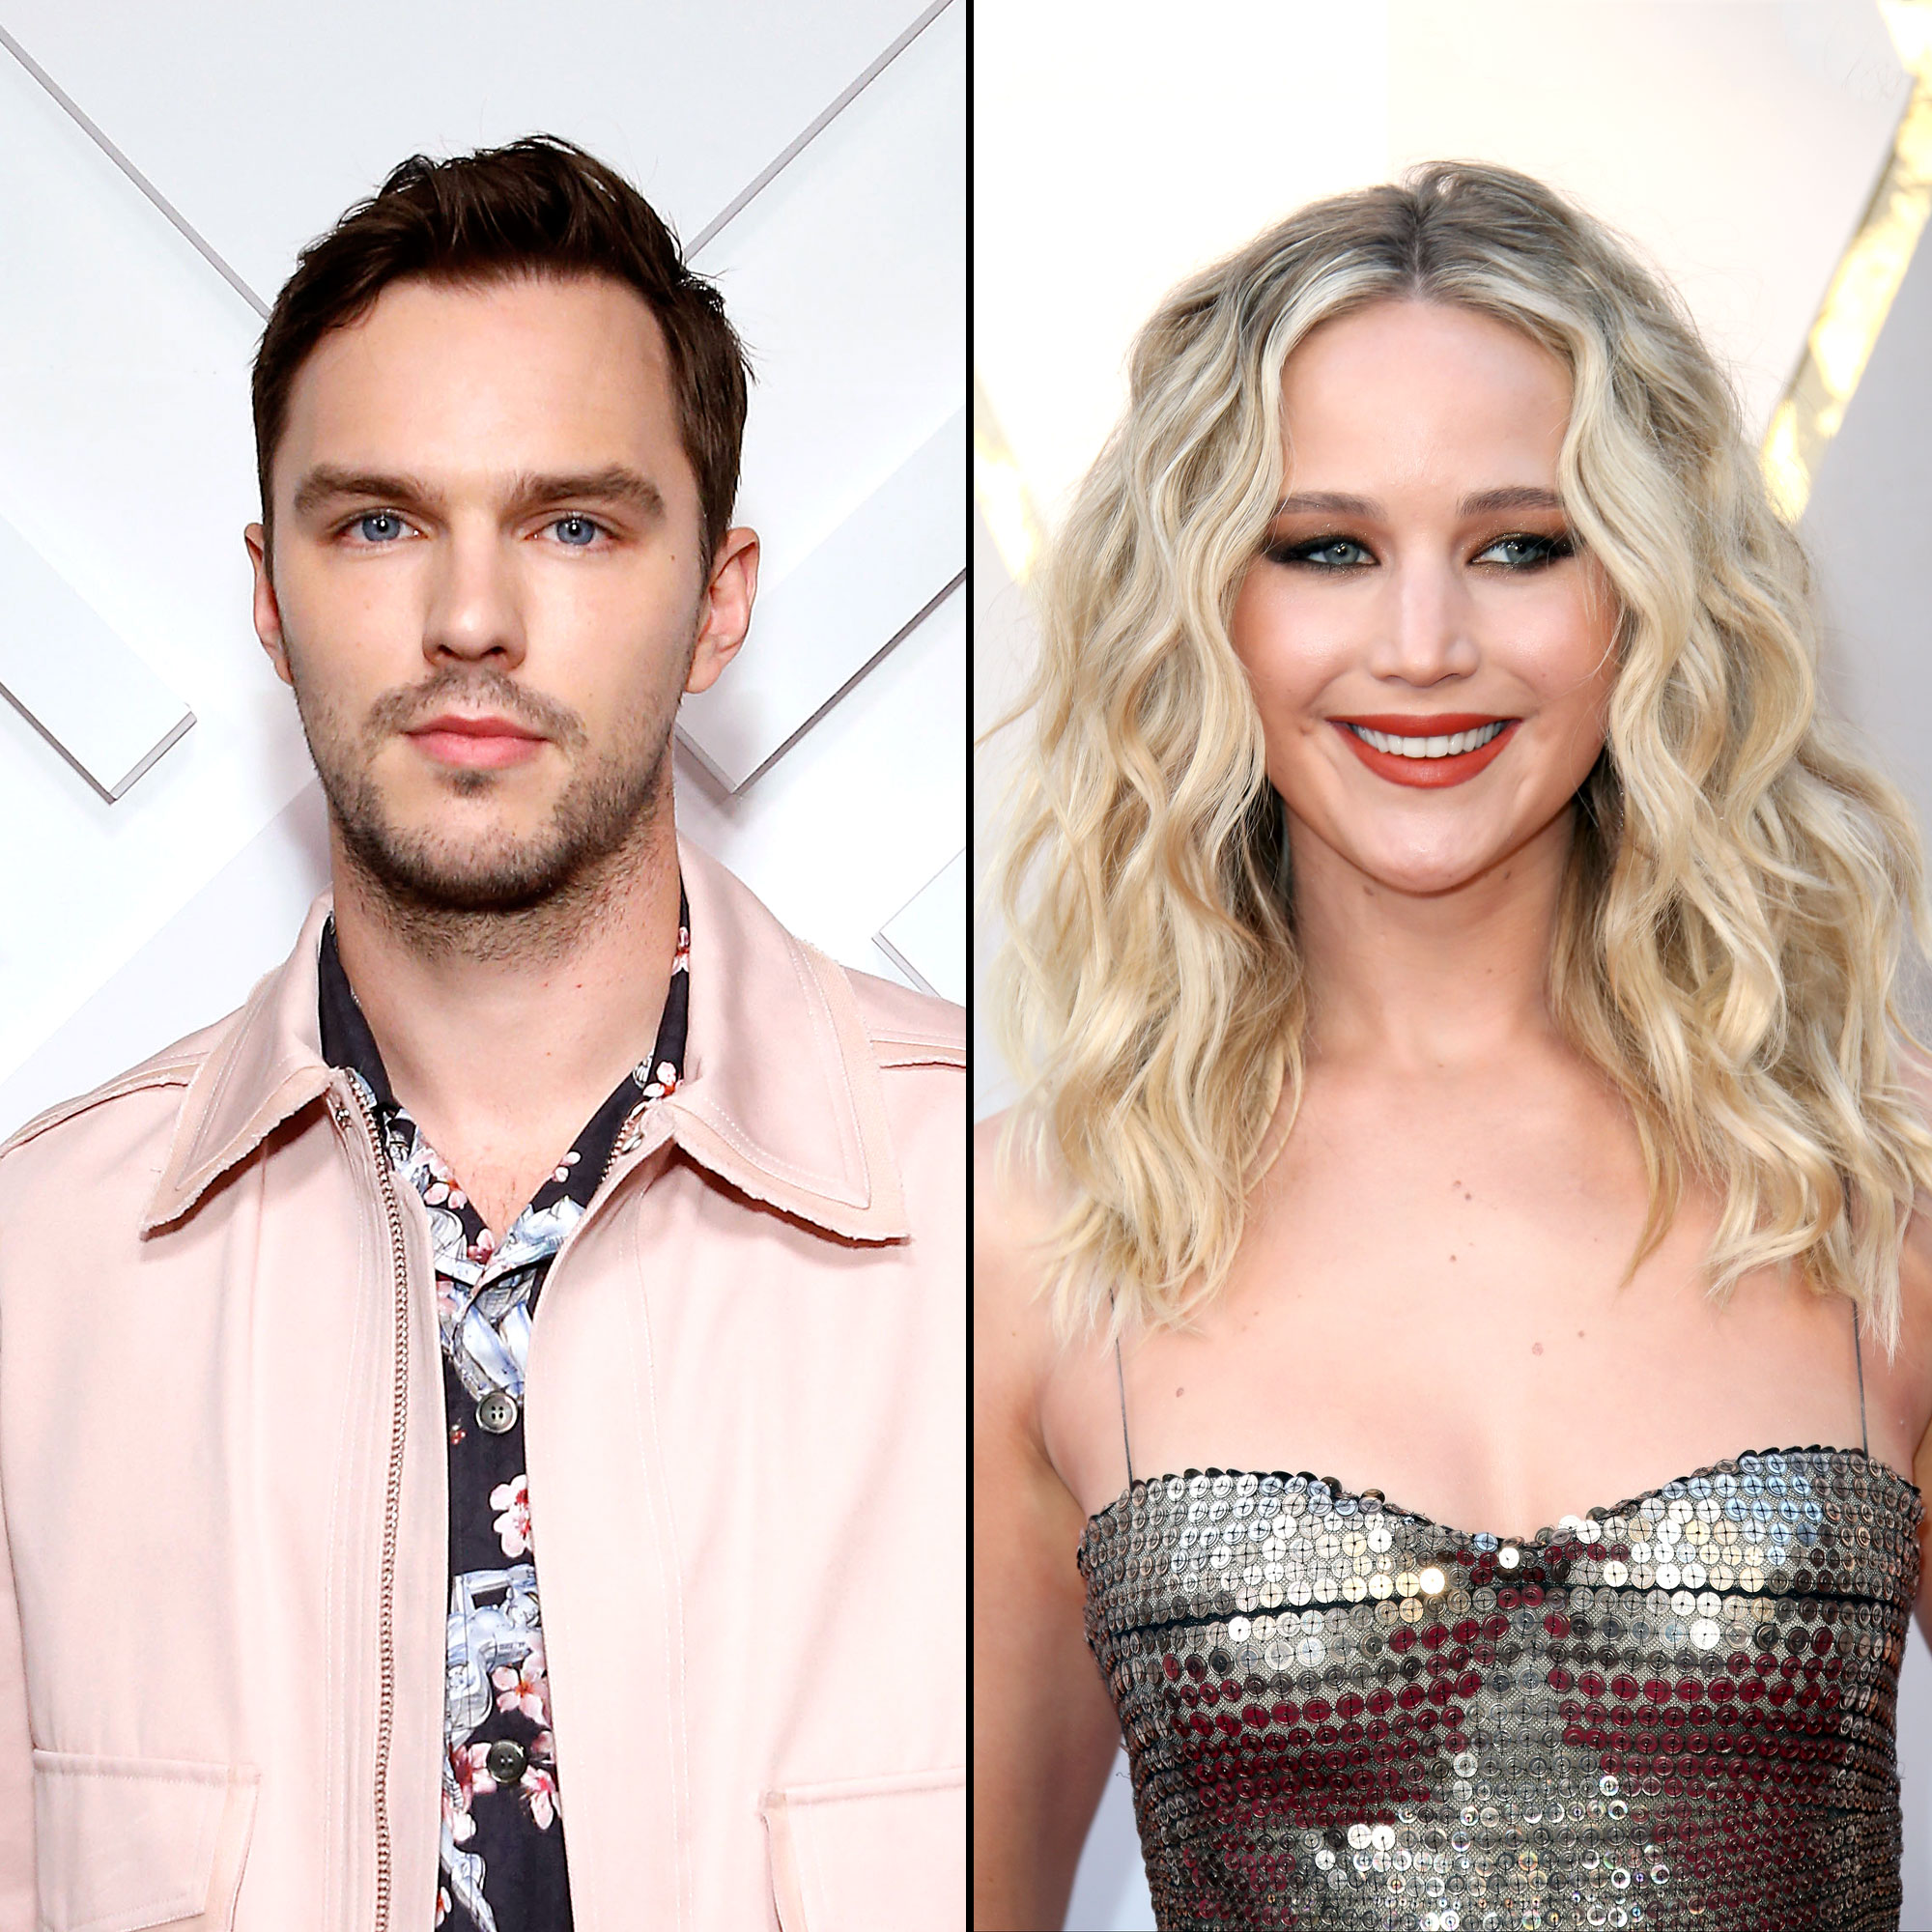 Nicholas Hoult On Working With Ex Girlfriend Jennifer Lawrence